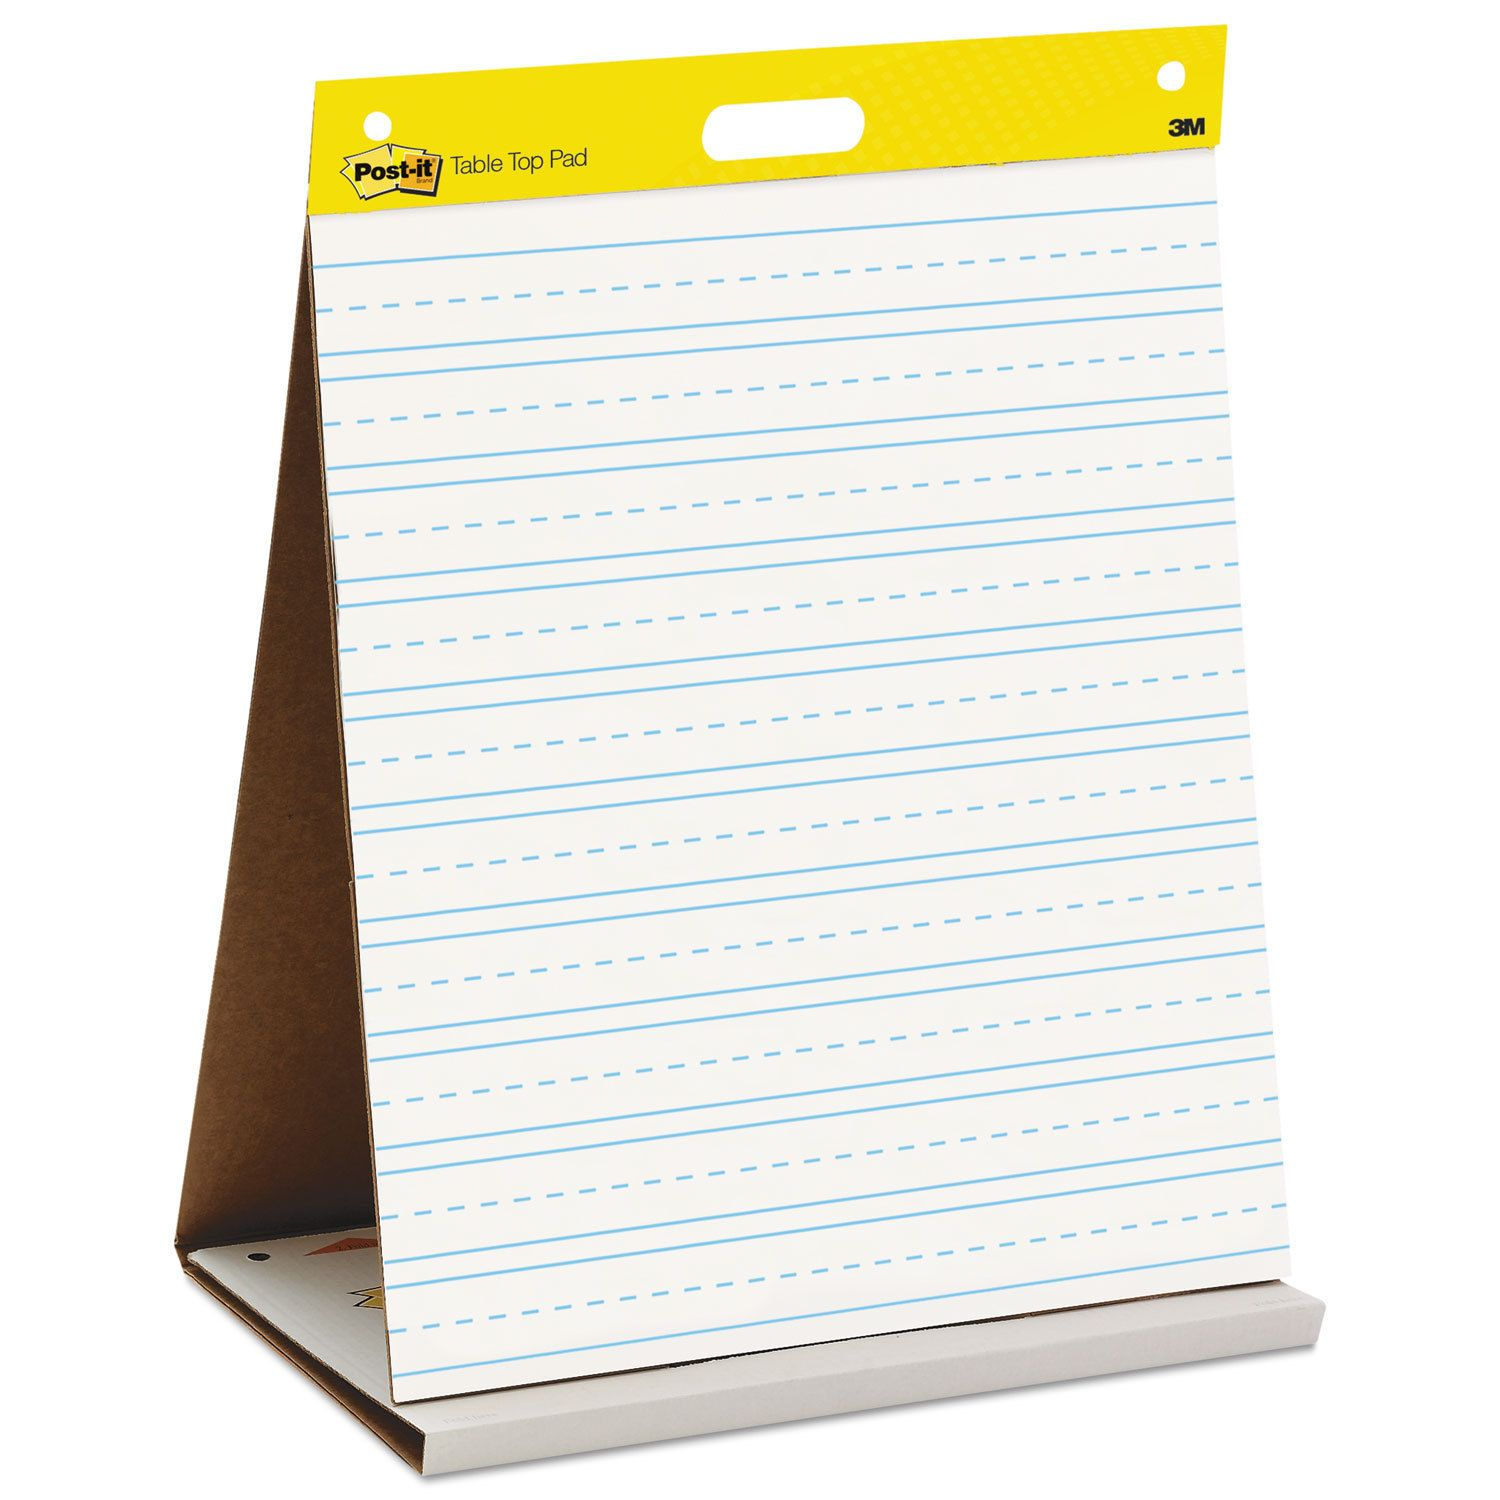 Post-it Easel Pads Self-Stick Tabletop Easel Primary Ruled Pad 20 x 23 20 Sheets/Pad